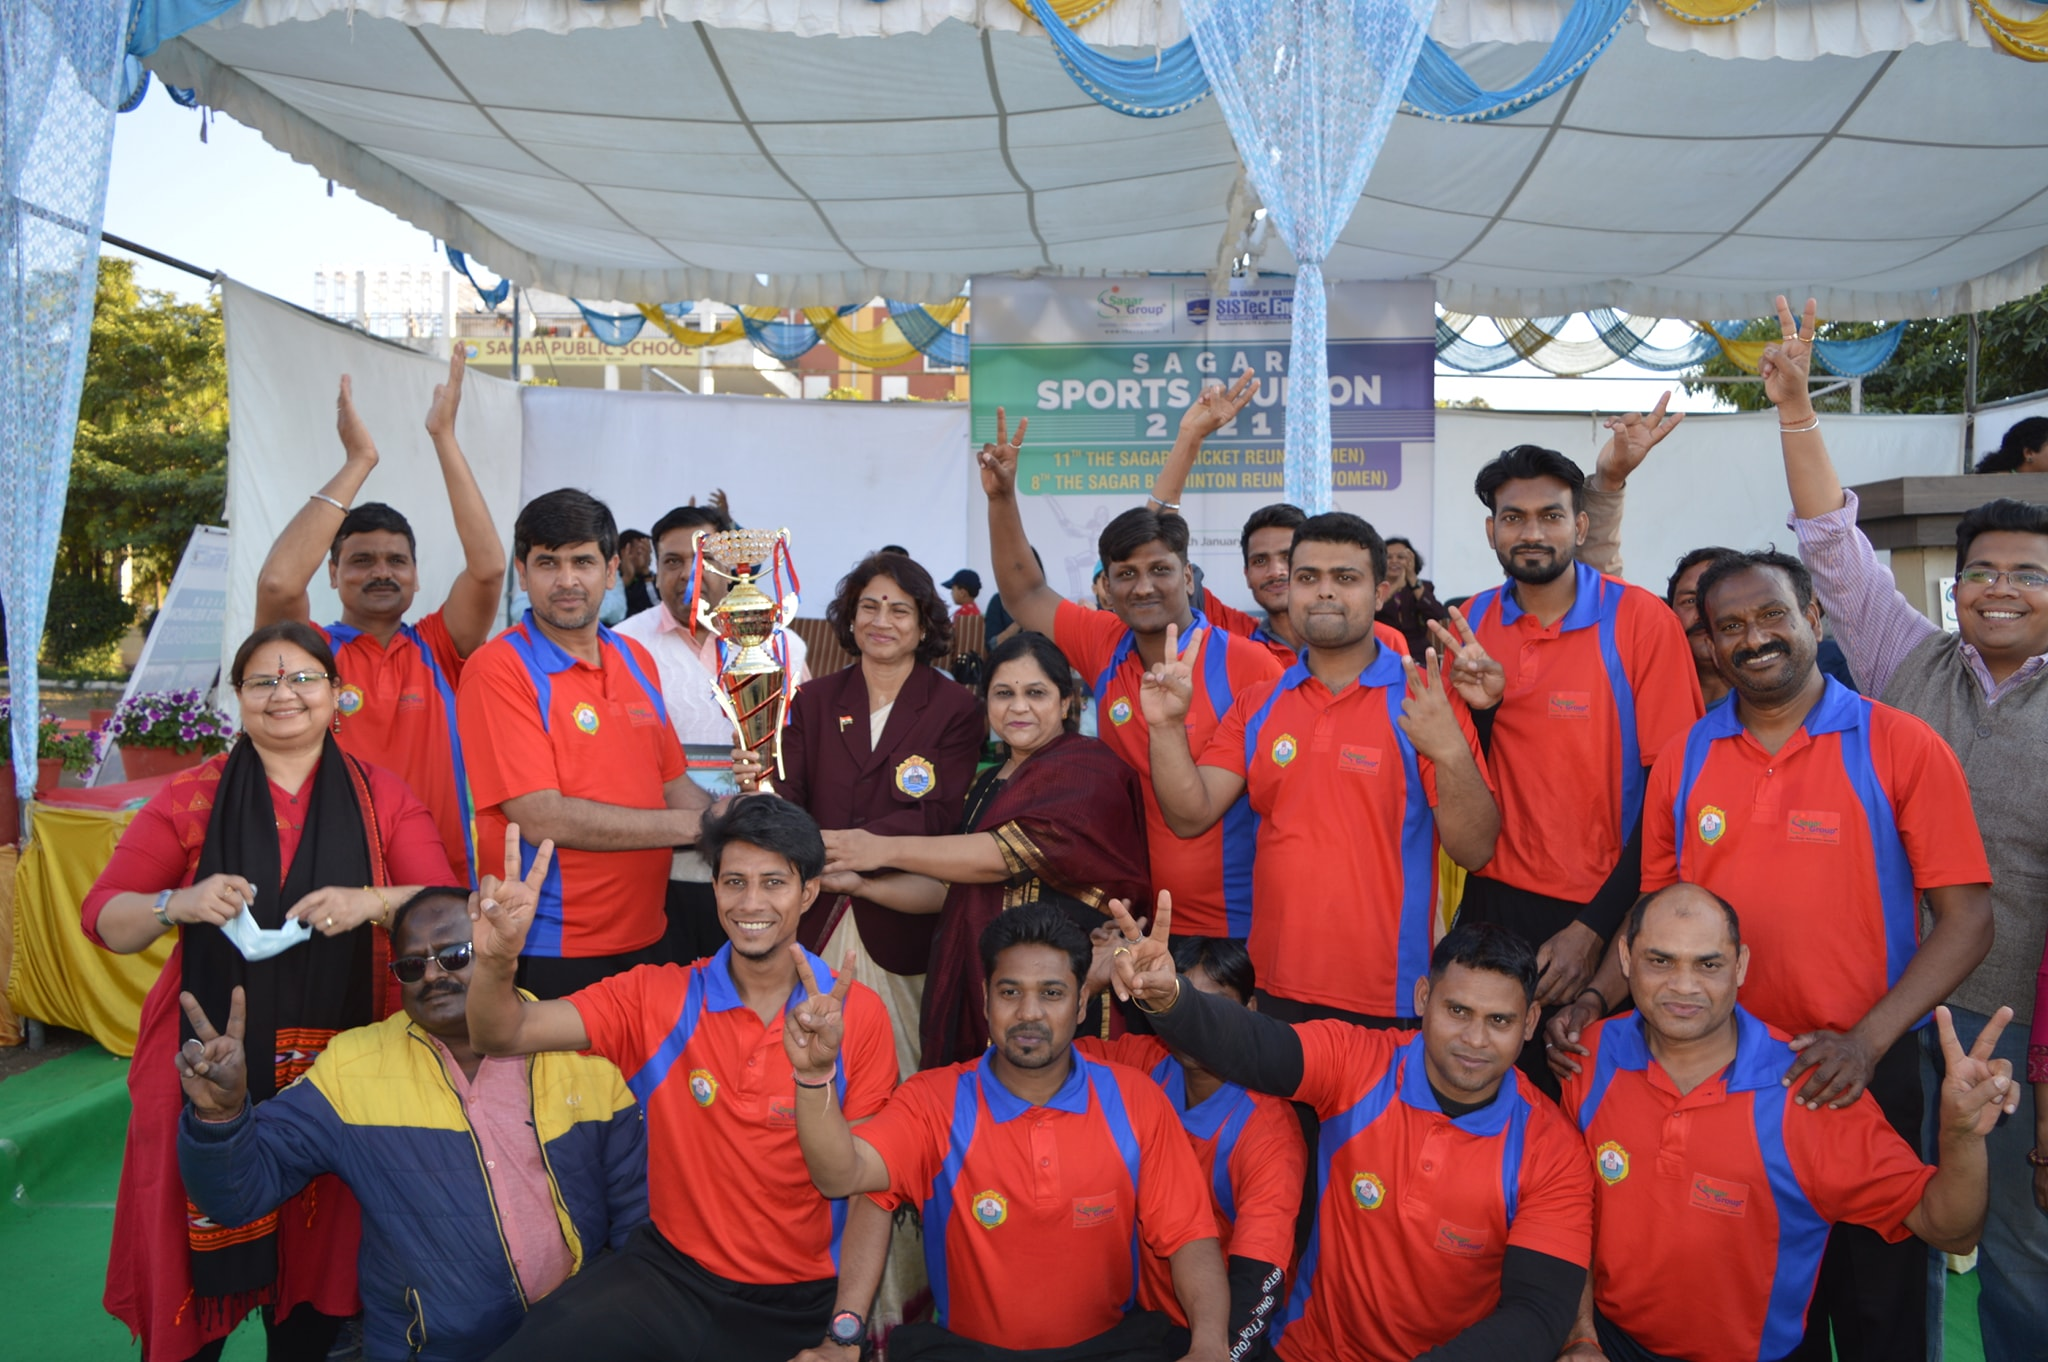 sagar sports reunion, cricket and badminton tournament, sagar group, sagar college bhopal, private engineering colleges in bhopal